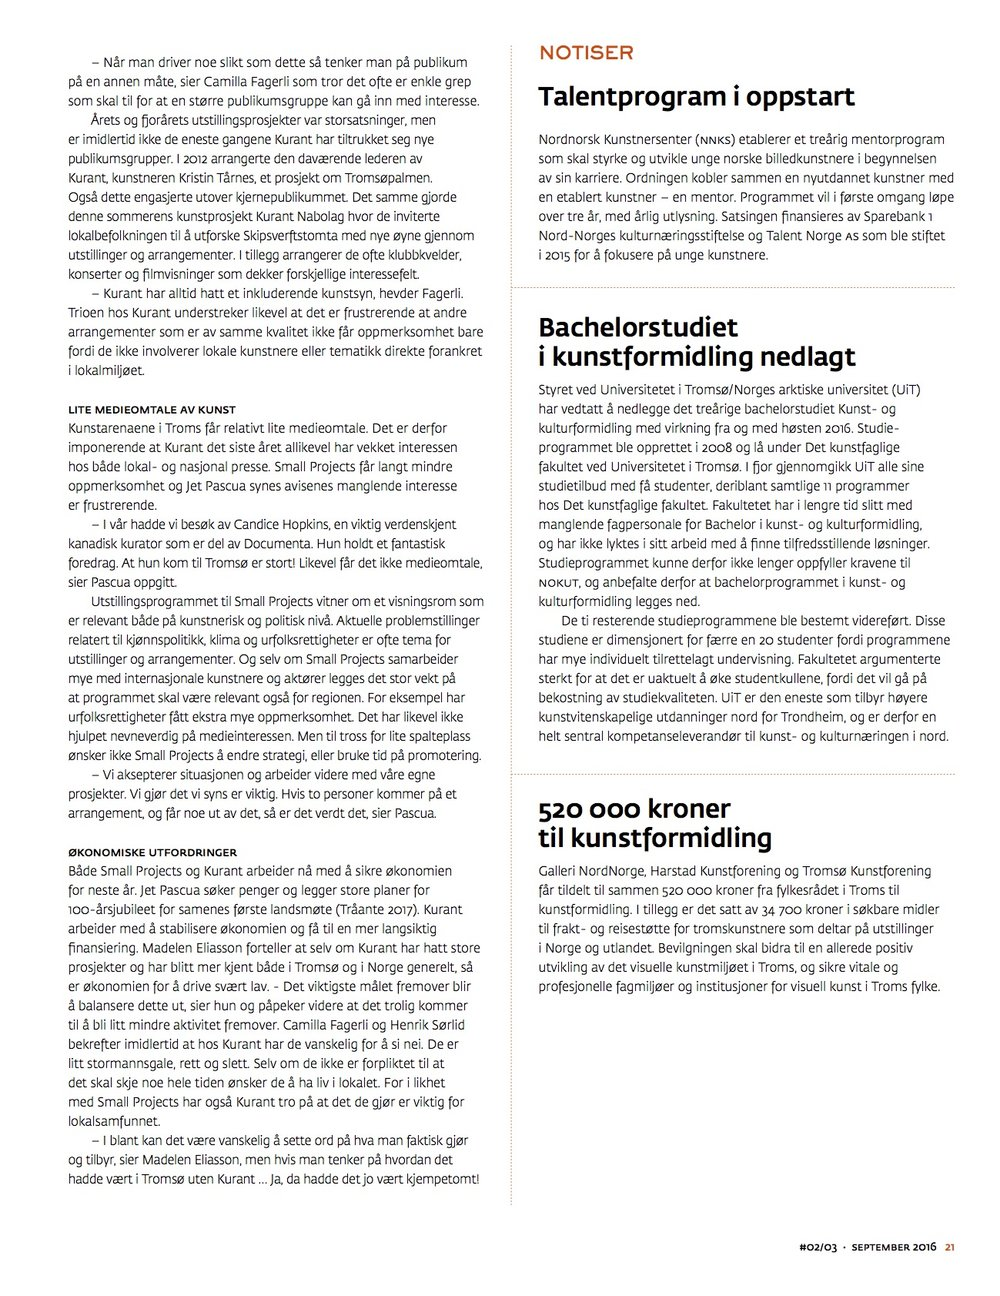 Pages from Se_Kunst_Magasin_02_03_2016_jubileum_21-kopi3.jpg